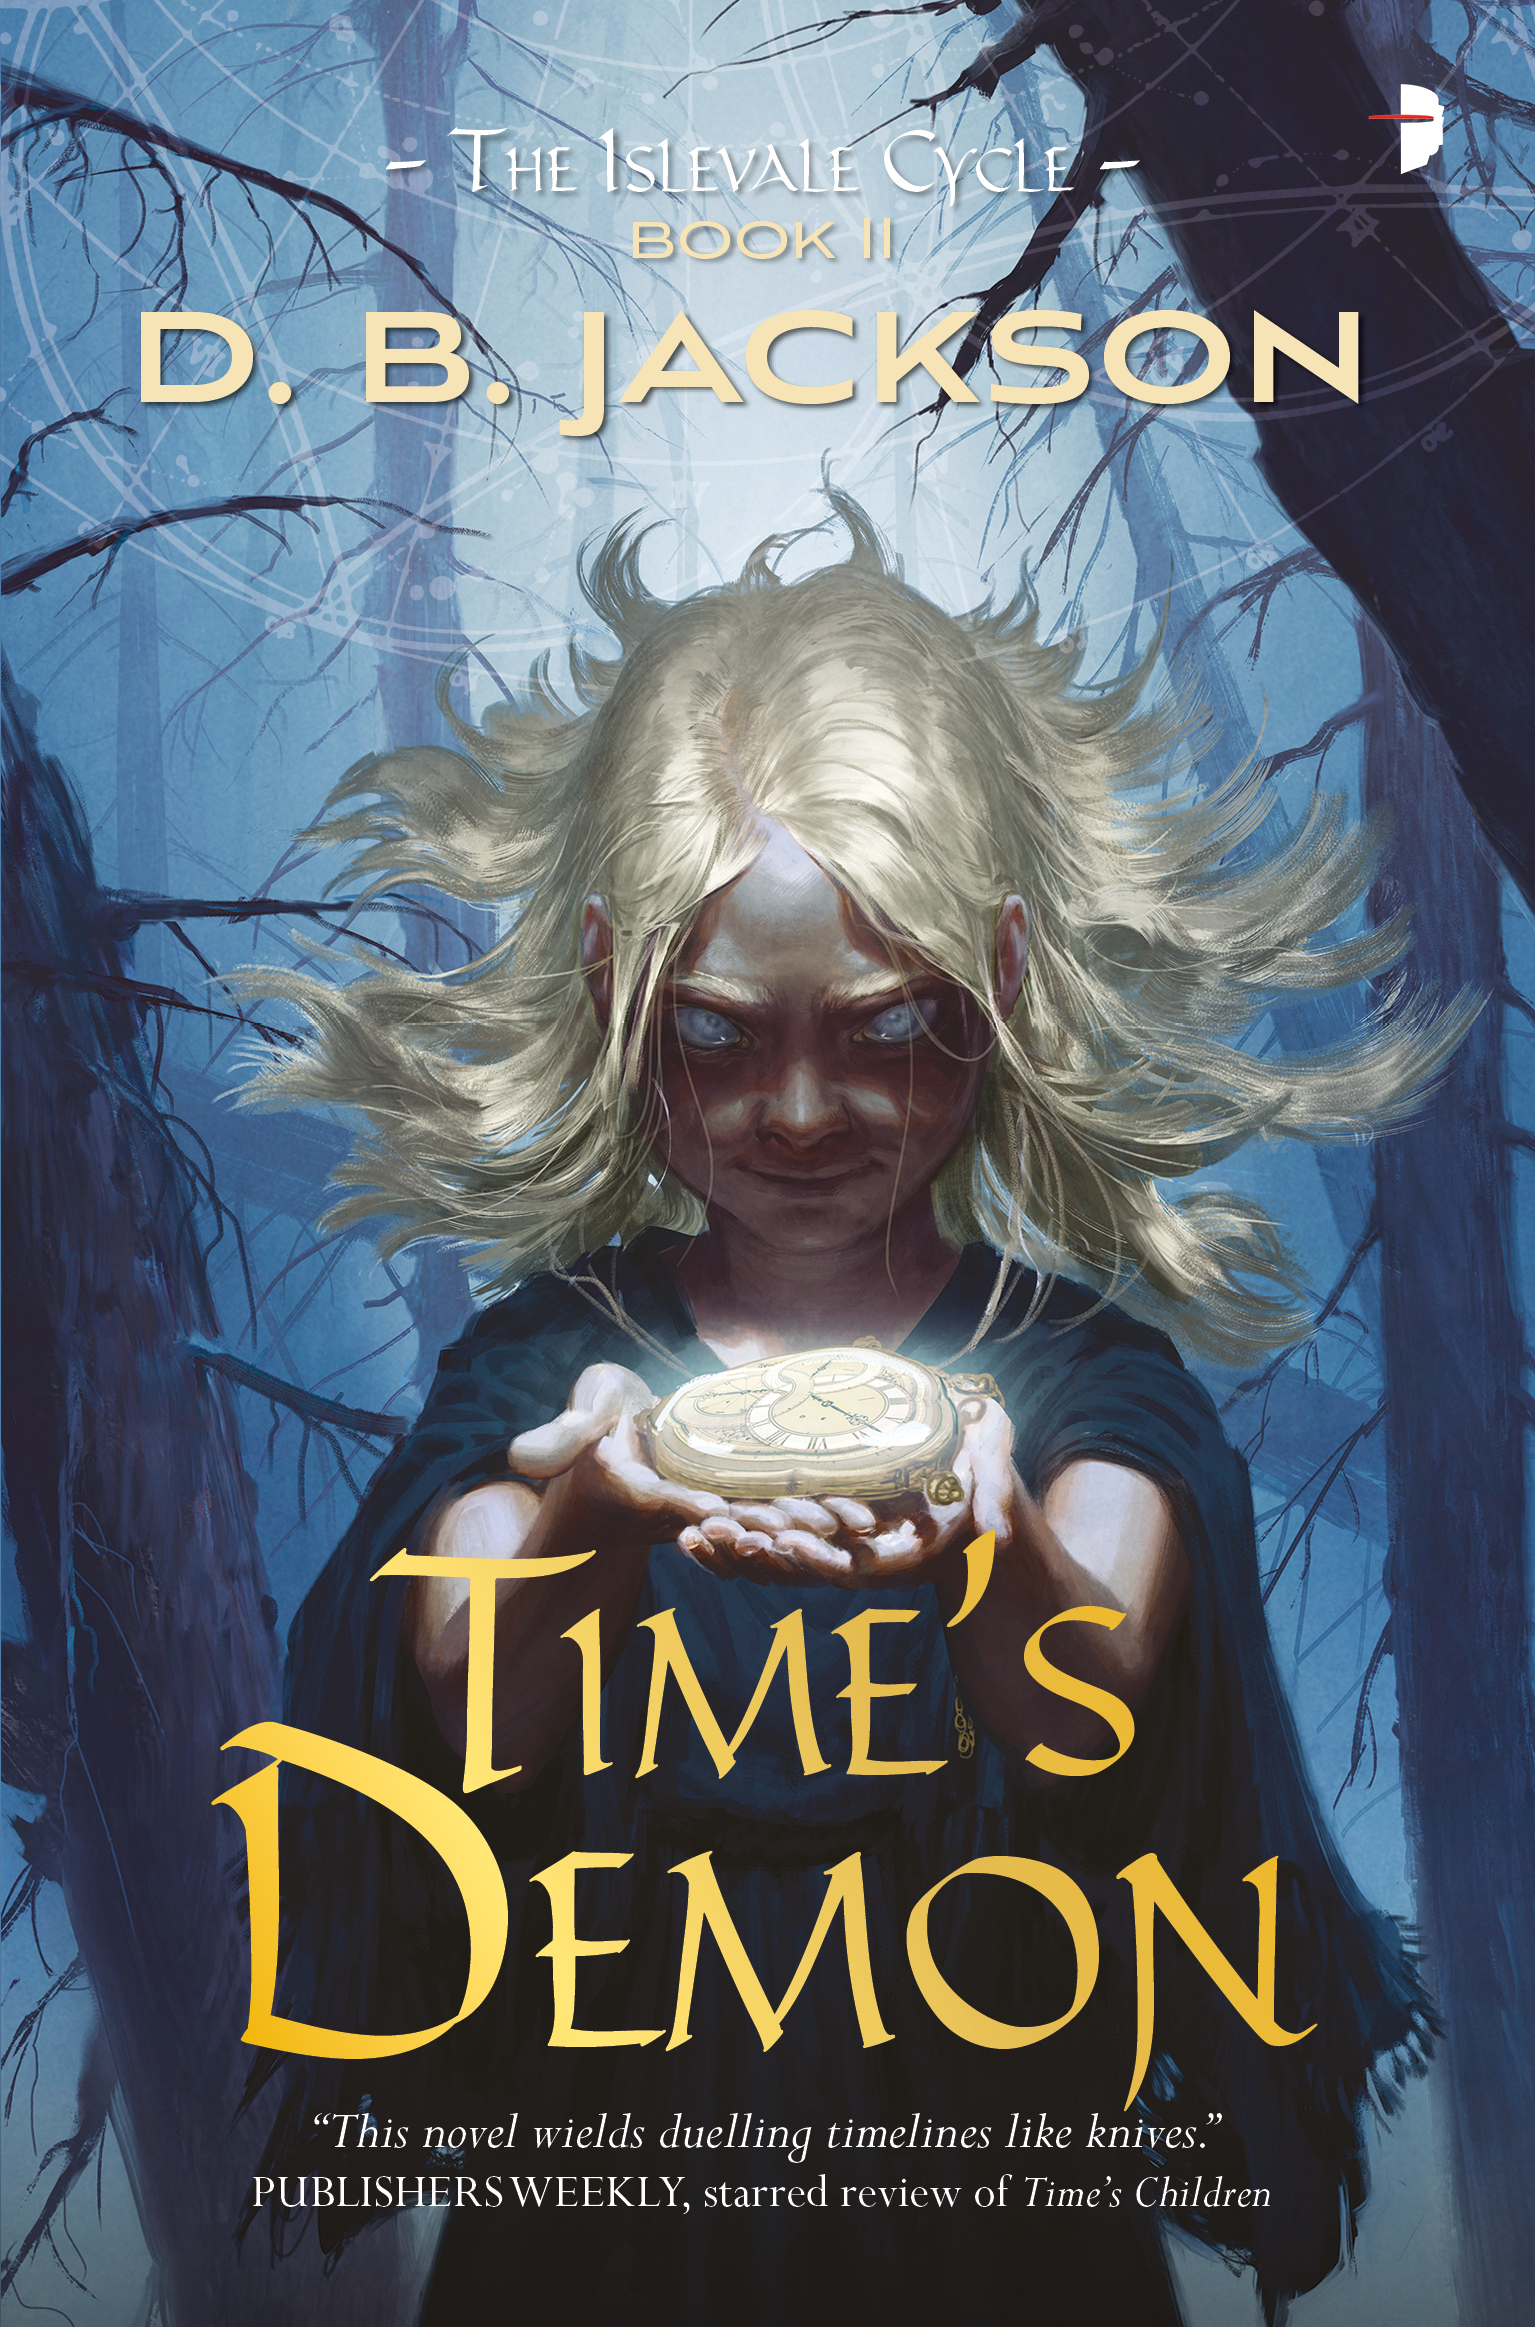 Time's Demon, by D.B. Jackson (Jacket art by Jan Wessbecher)